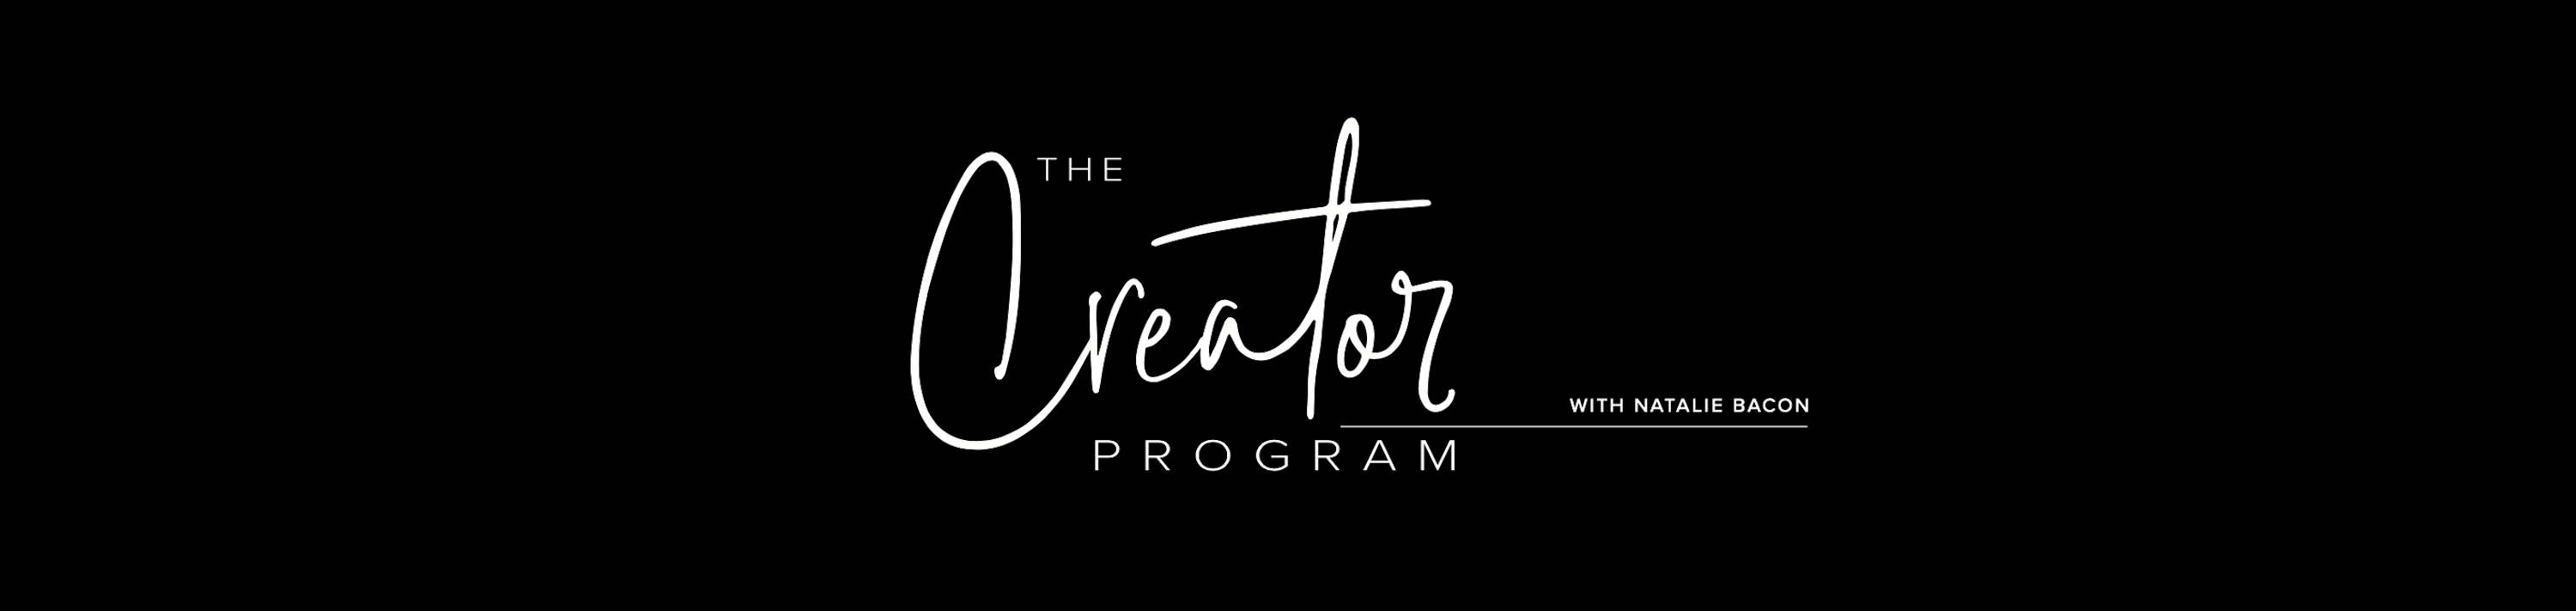 Creator Program Image